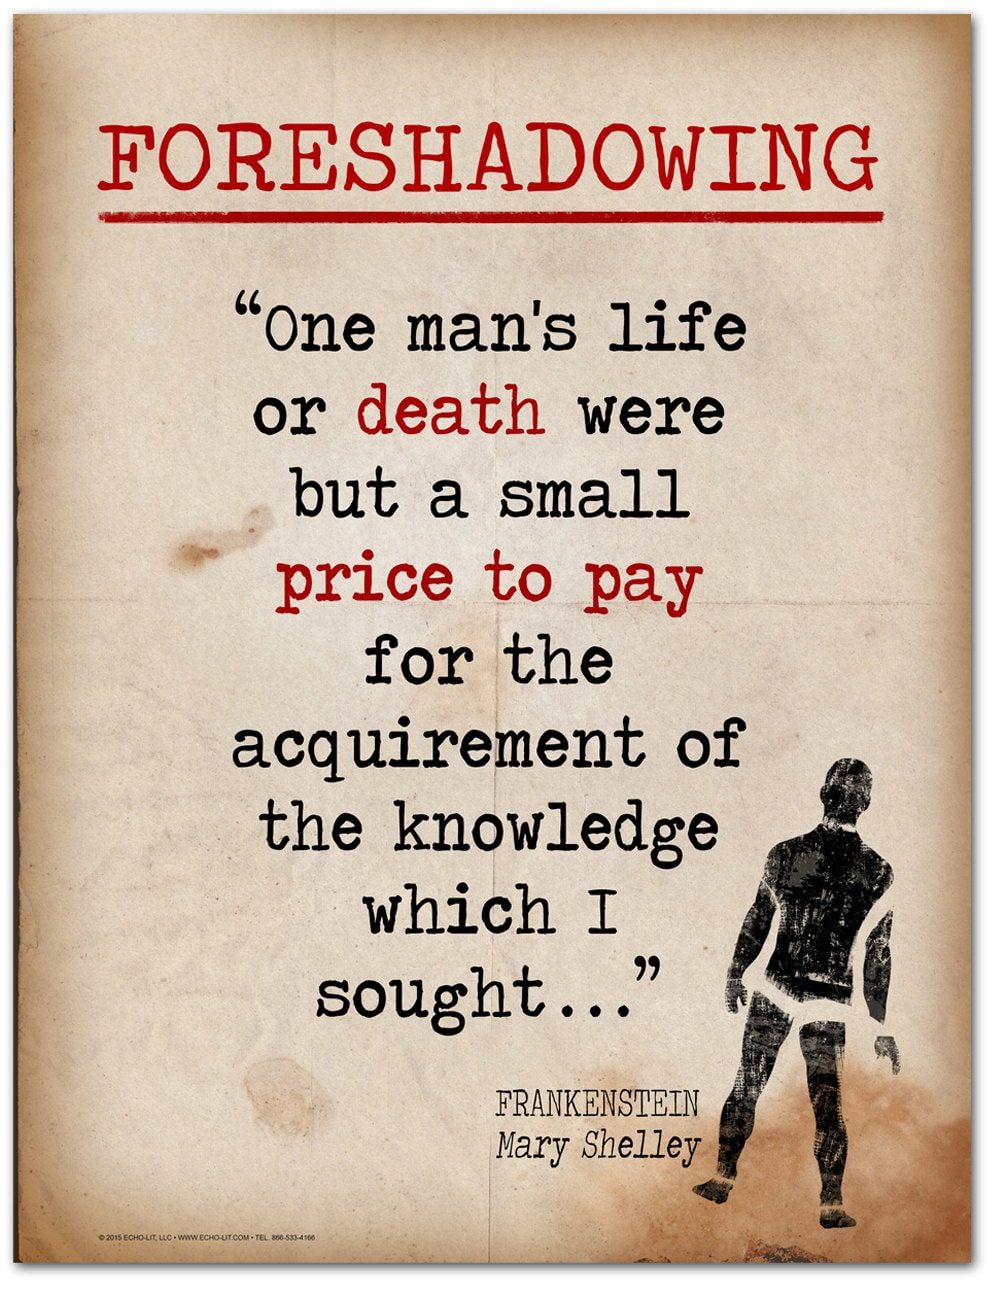 Quotes From Fahrenheit 451 Frankenstein Foreshadowing Quote Educational Art Print